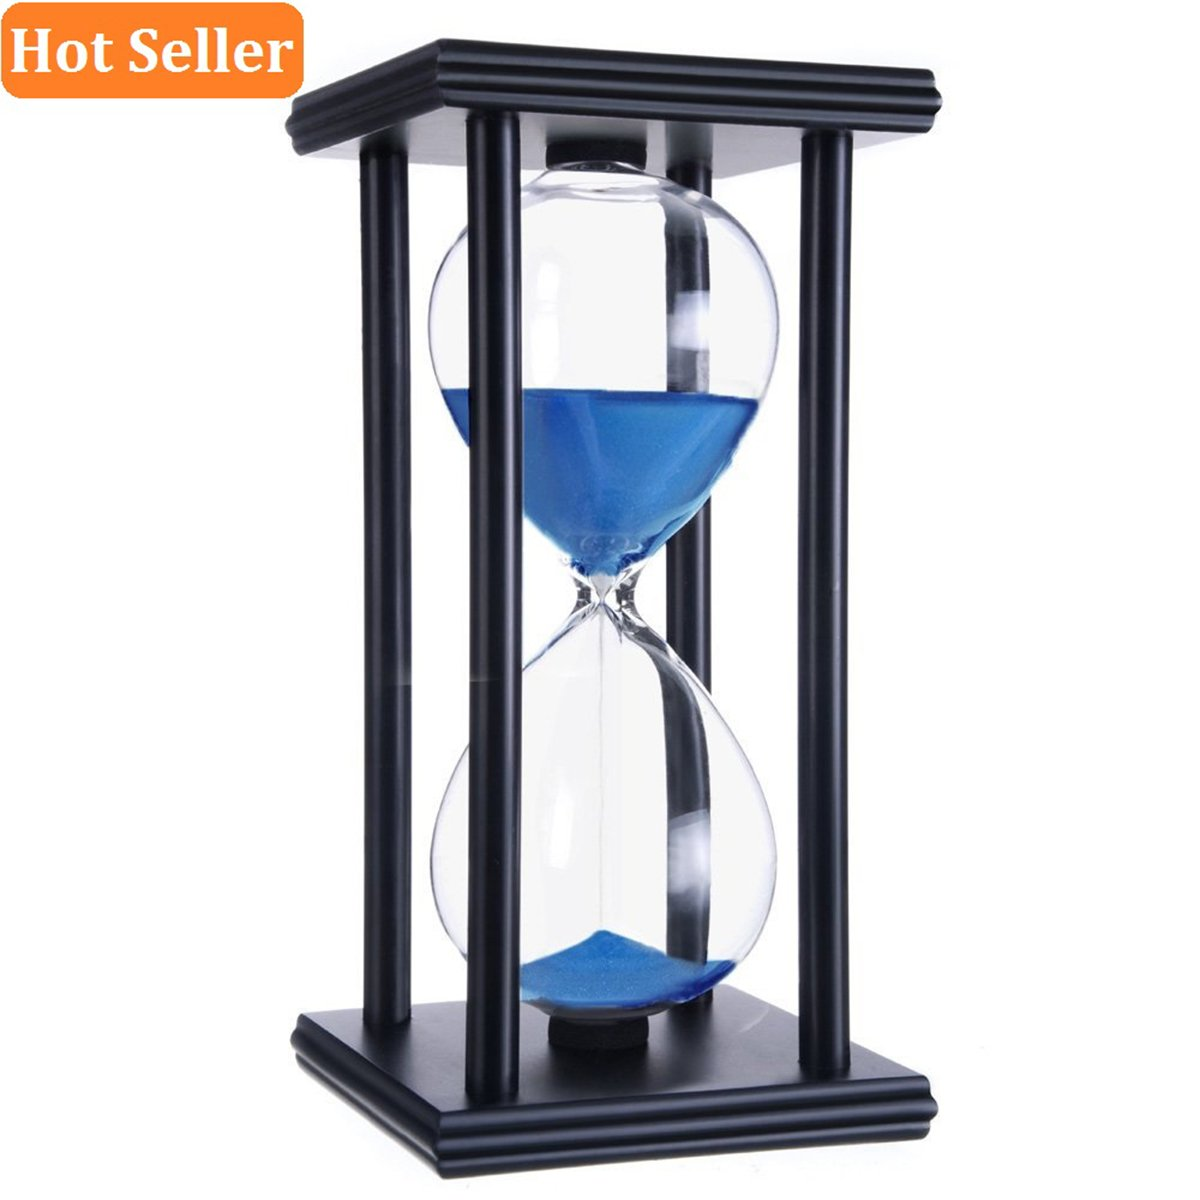 Hourglass 60 minutes Sand Timer Clock hourglass timer Blue Sand Wooden Black Stand Hourglass for kids Office kitchen Decor Home Study Bedroom Living Room Christmas Gift Wedding xinbao666